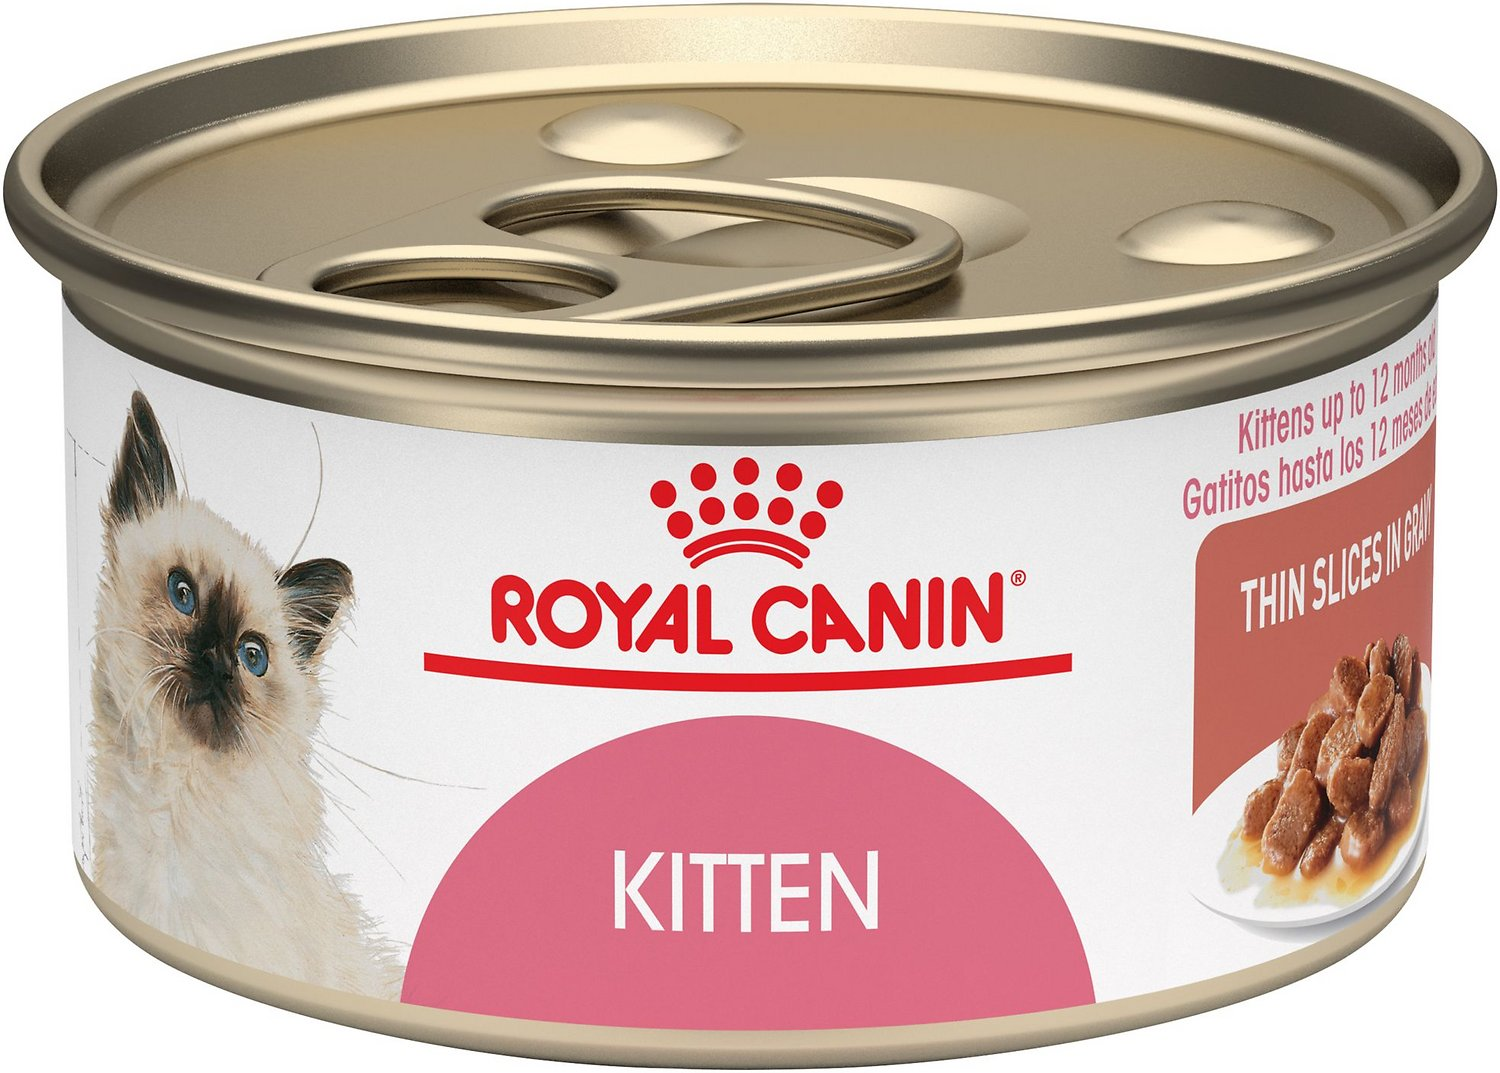 Royal Canin Kitten Instinctive Thin Slices in Gravy Canned Cat Food Image